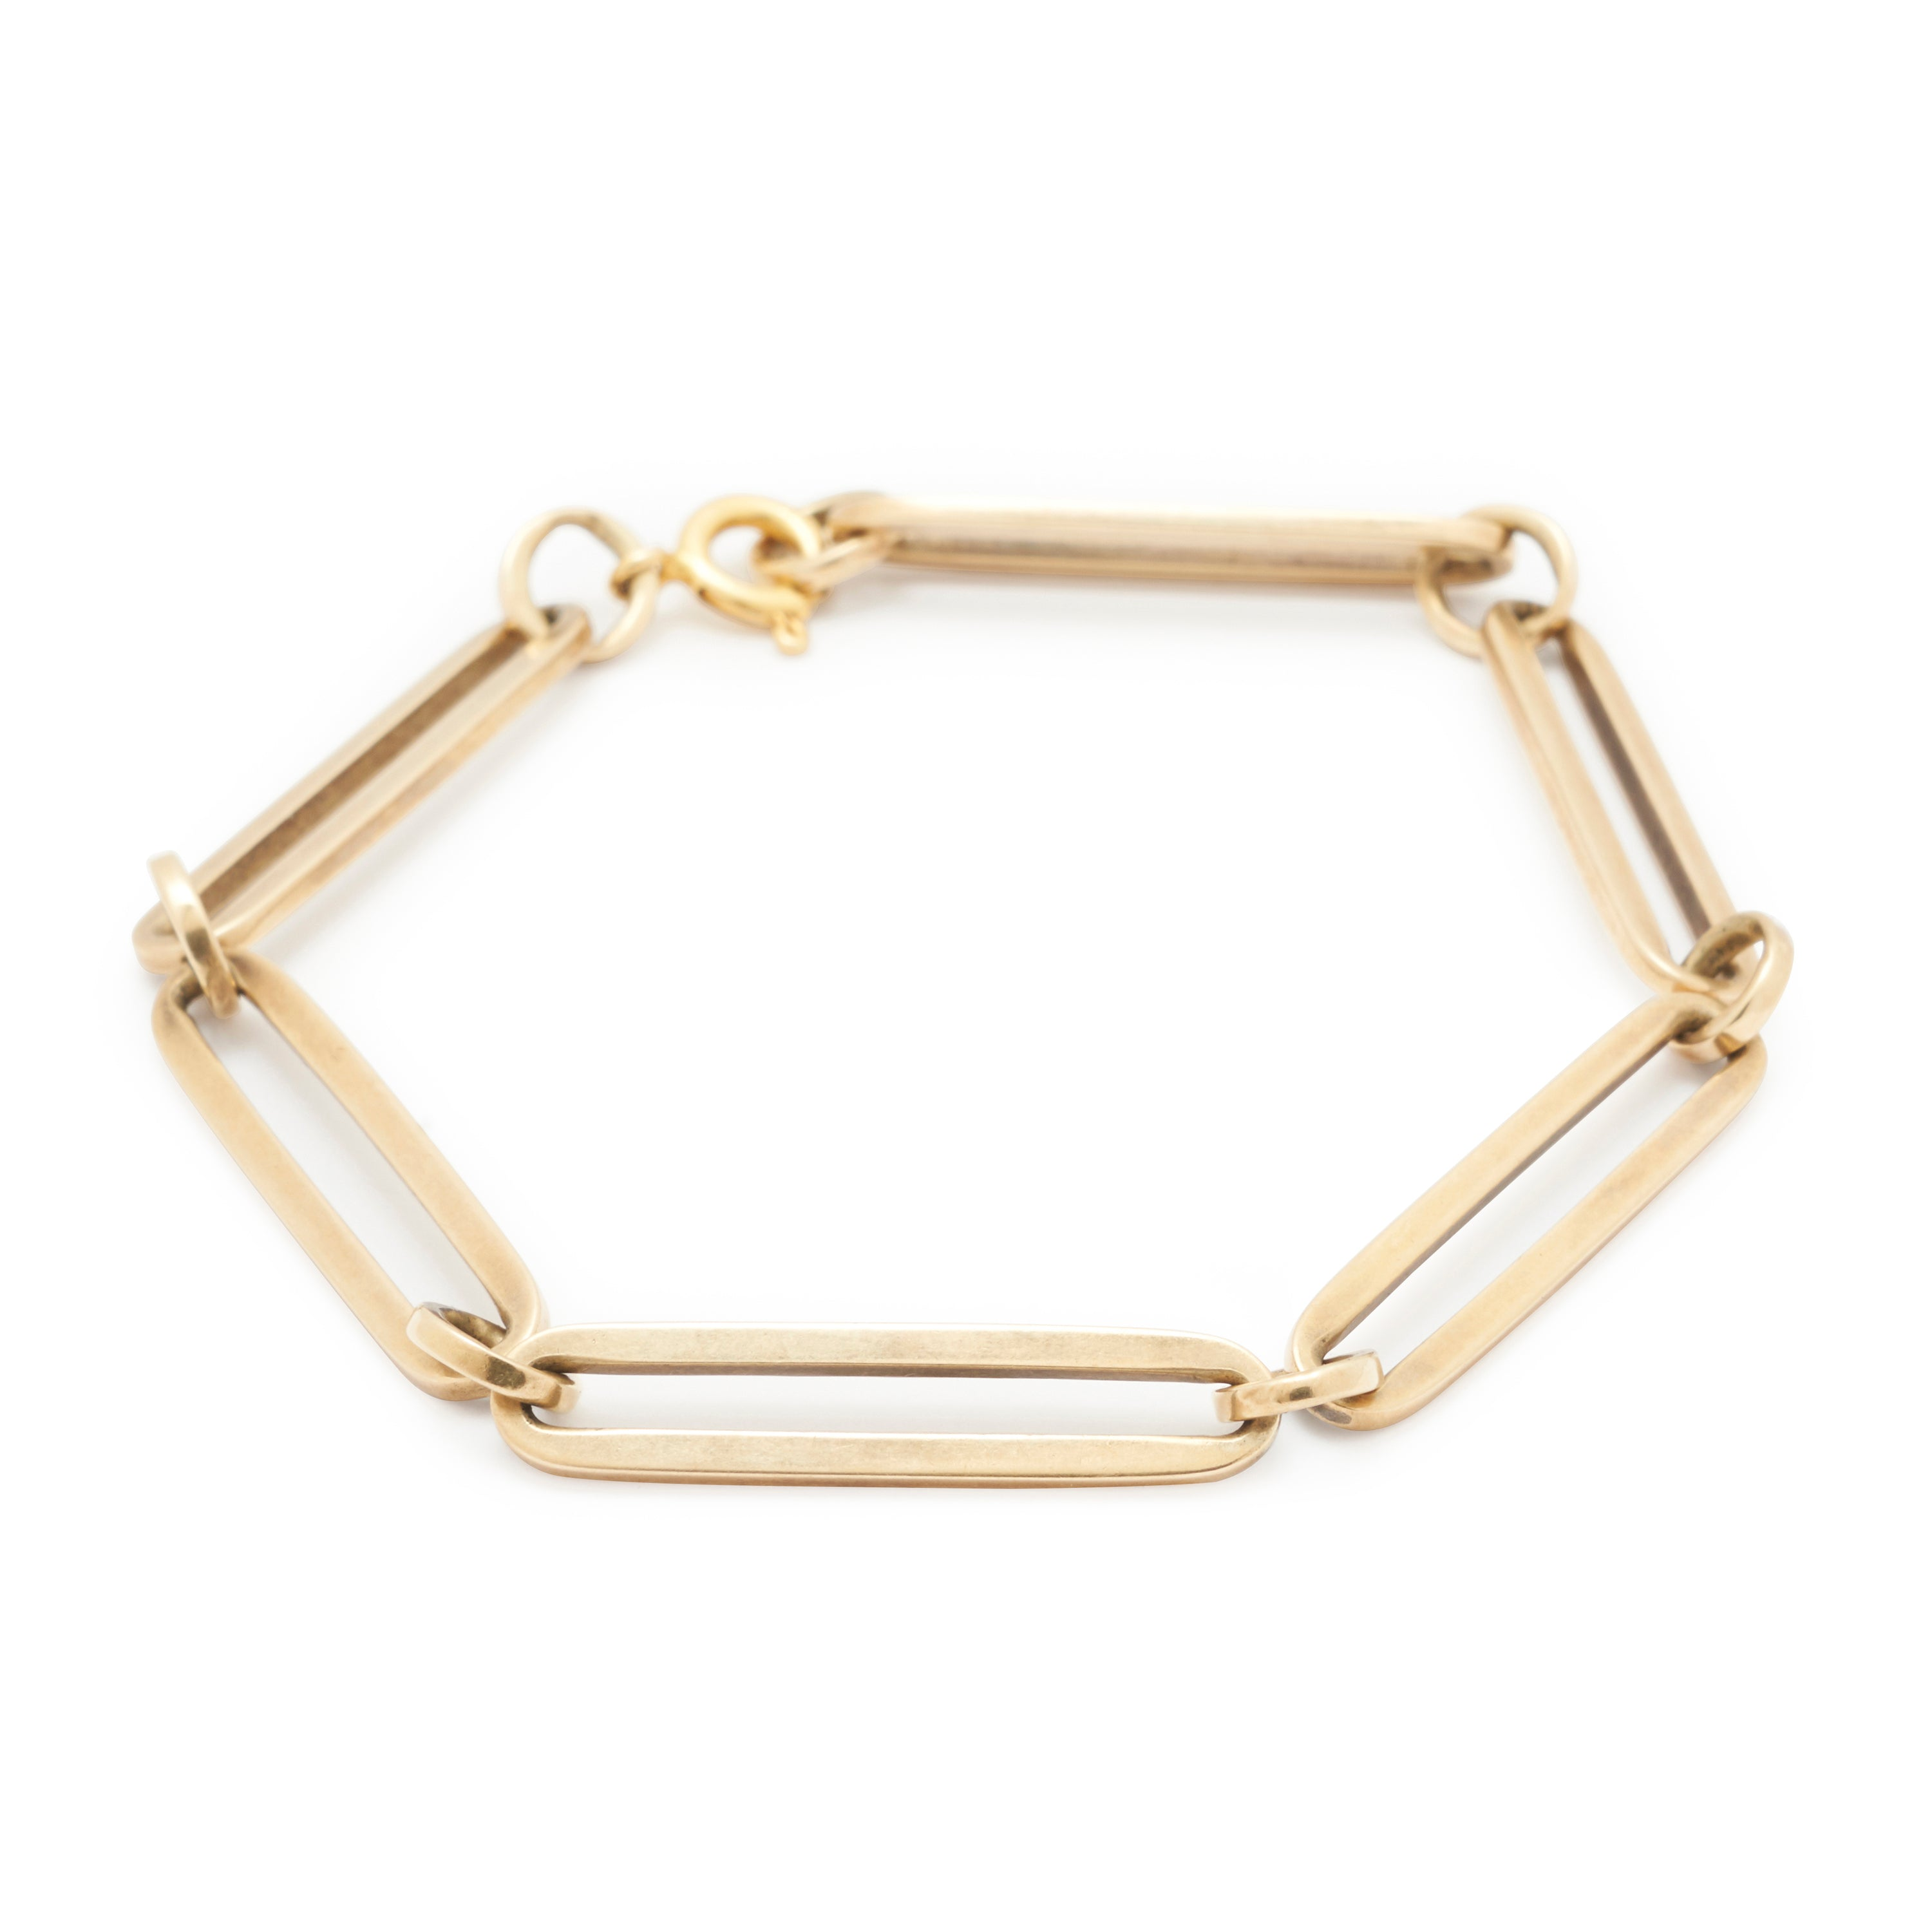 Elongated Link 18k Gold Bracelet